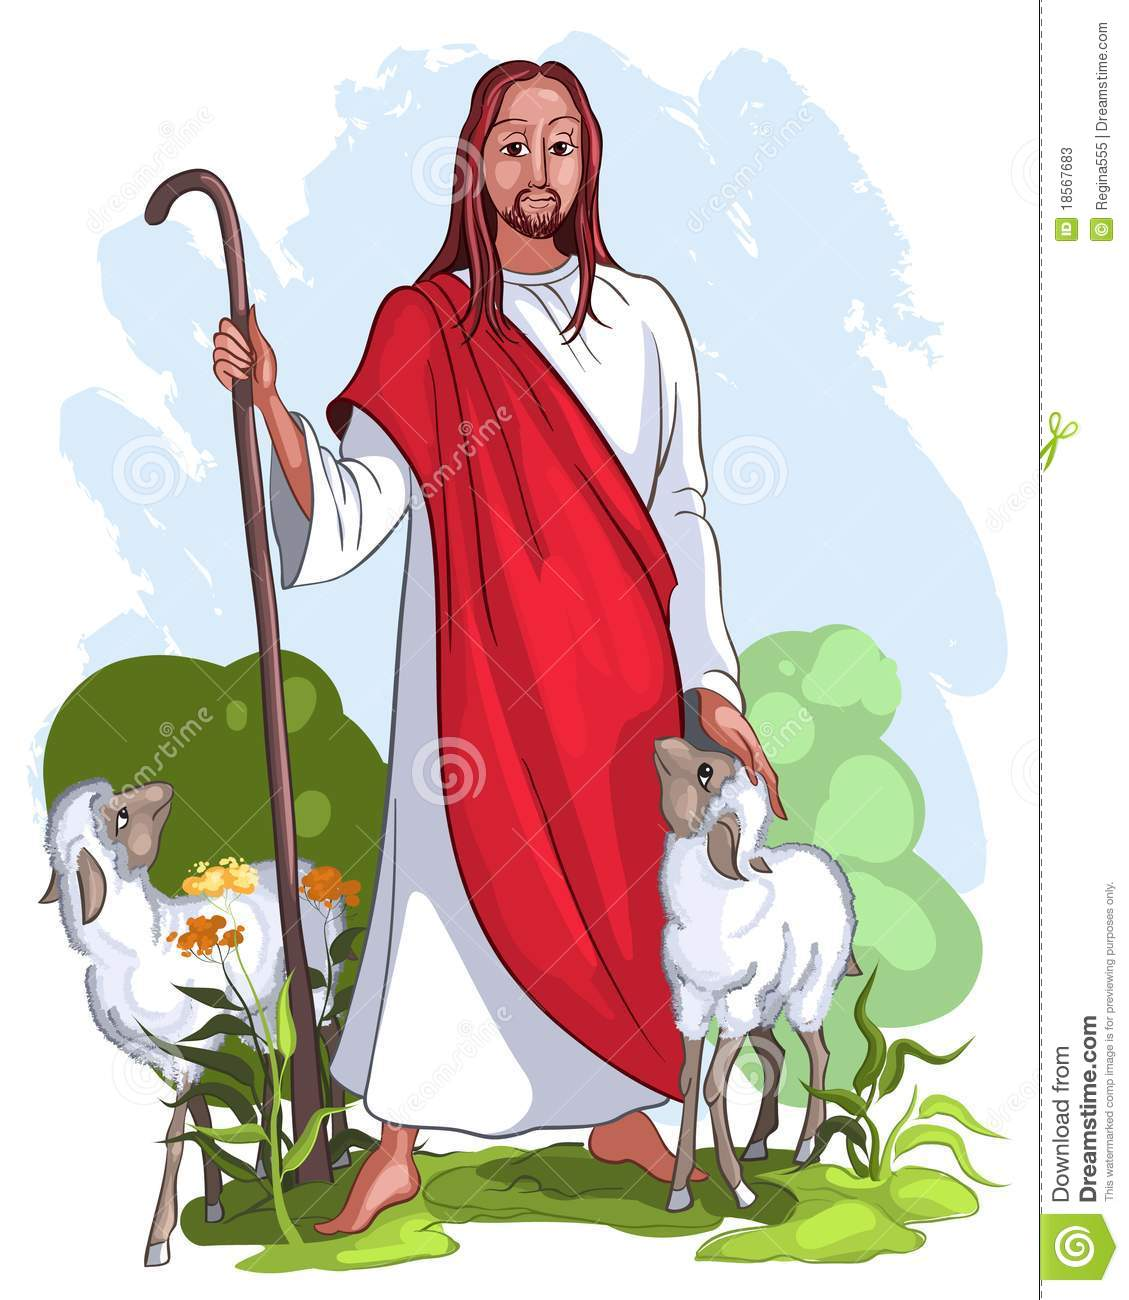 am the good shepherd giving the life for the sheep (John 10:11).